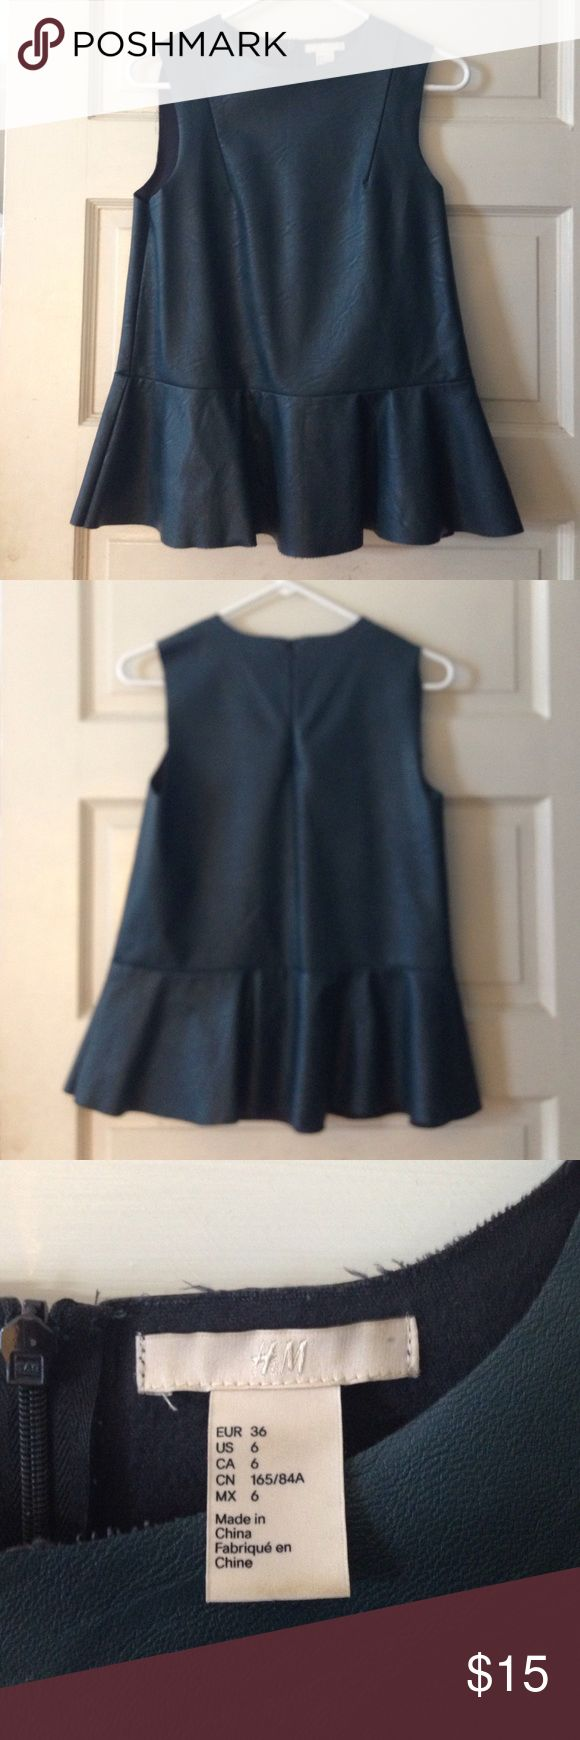 H&M vegan leather peplum top H&M vegan leather sleeveless peplum top in teal size US 6, EUR 36. Excellent condition. Please message me with any questions! H&M Tops Tank Tops